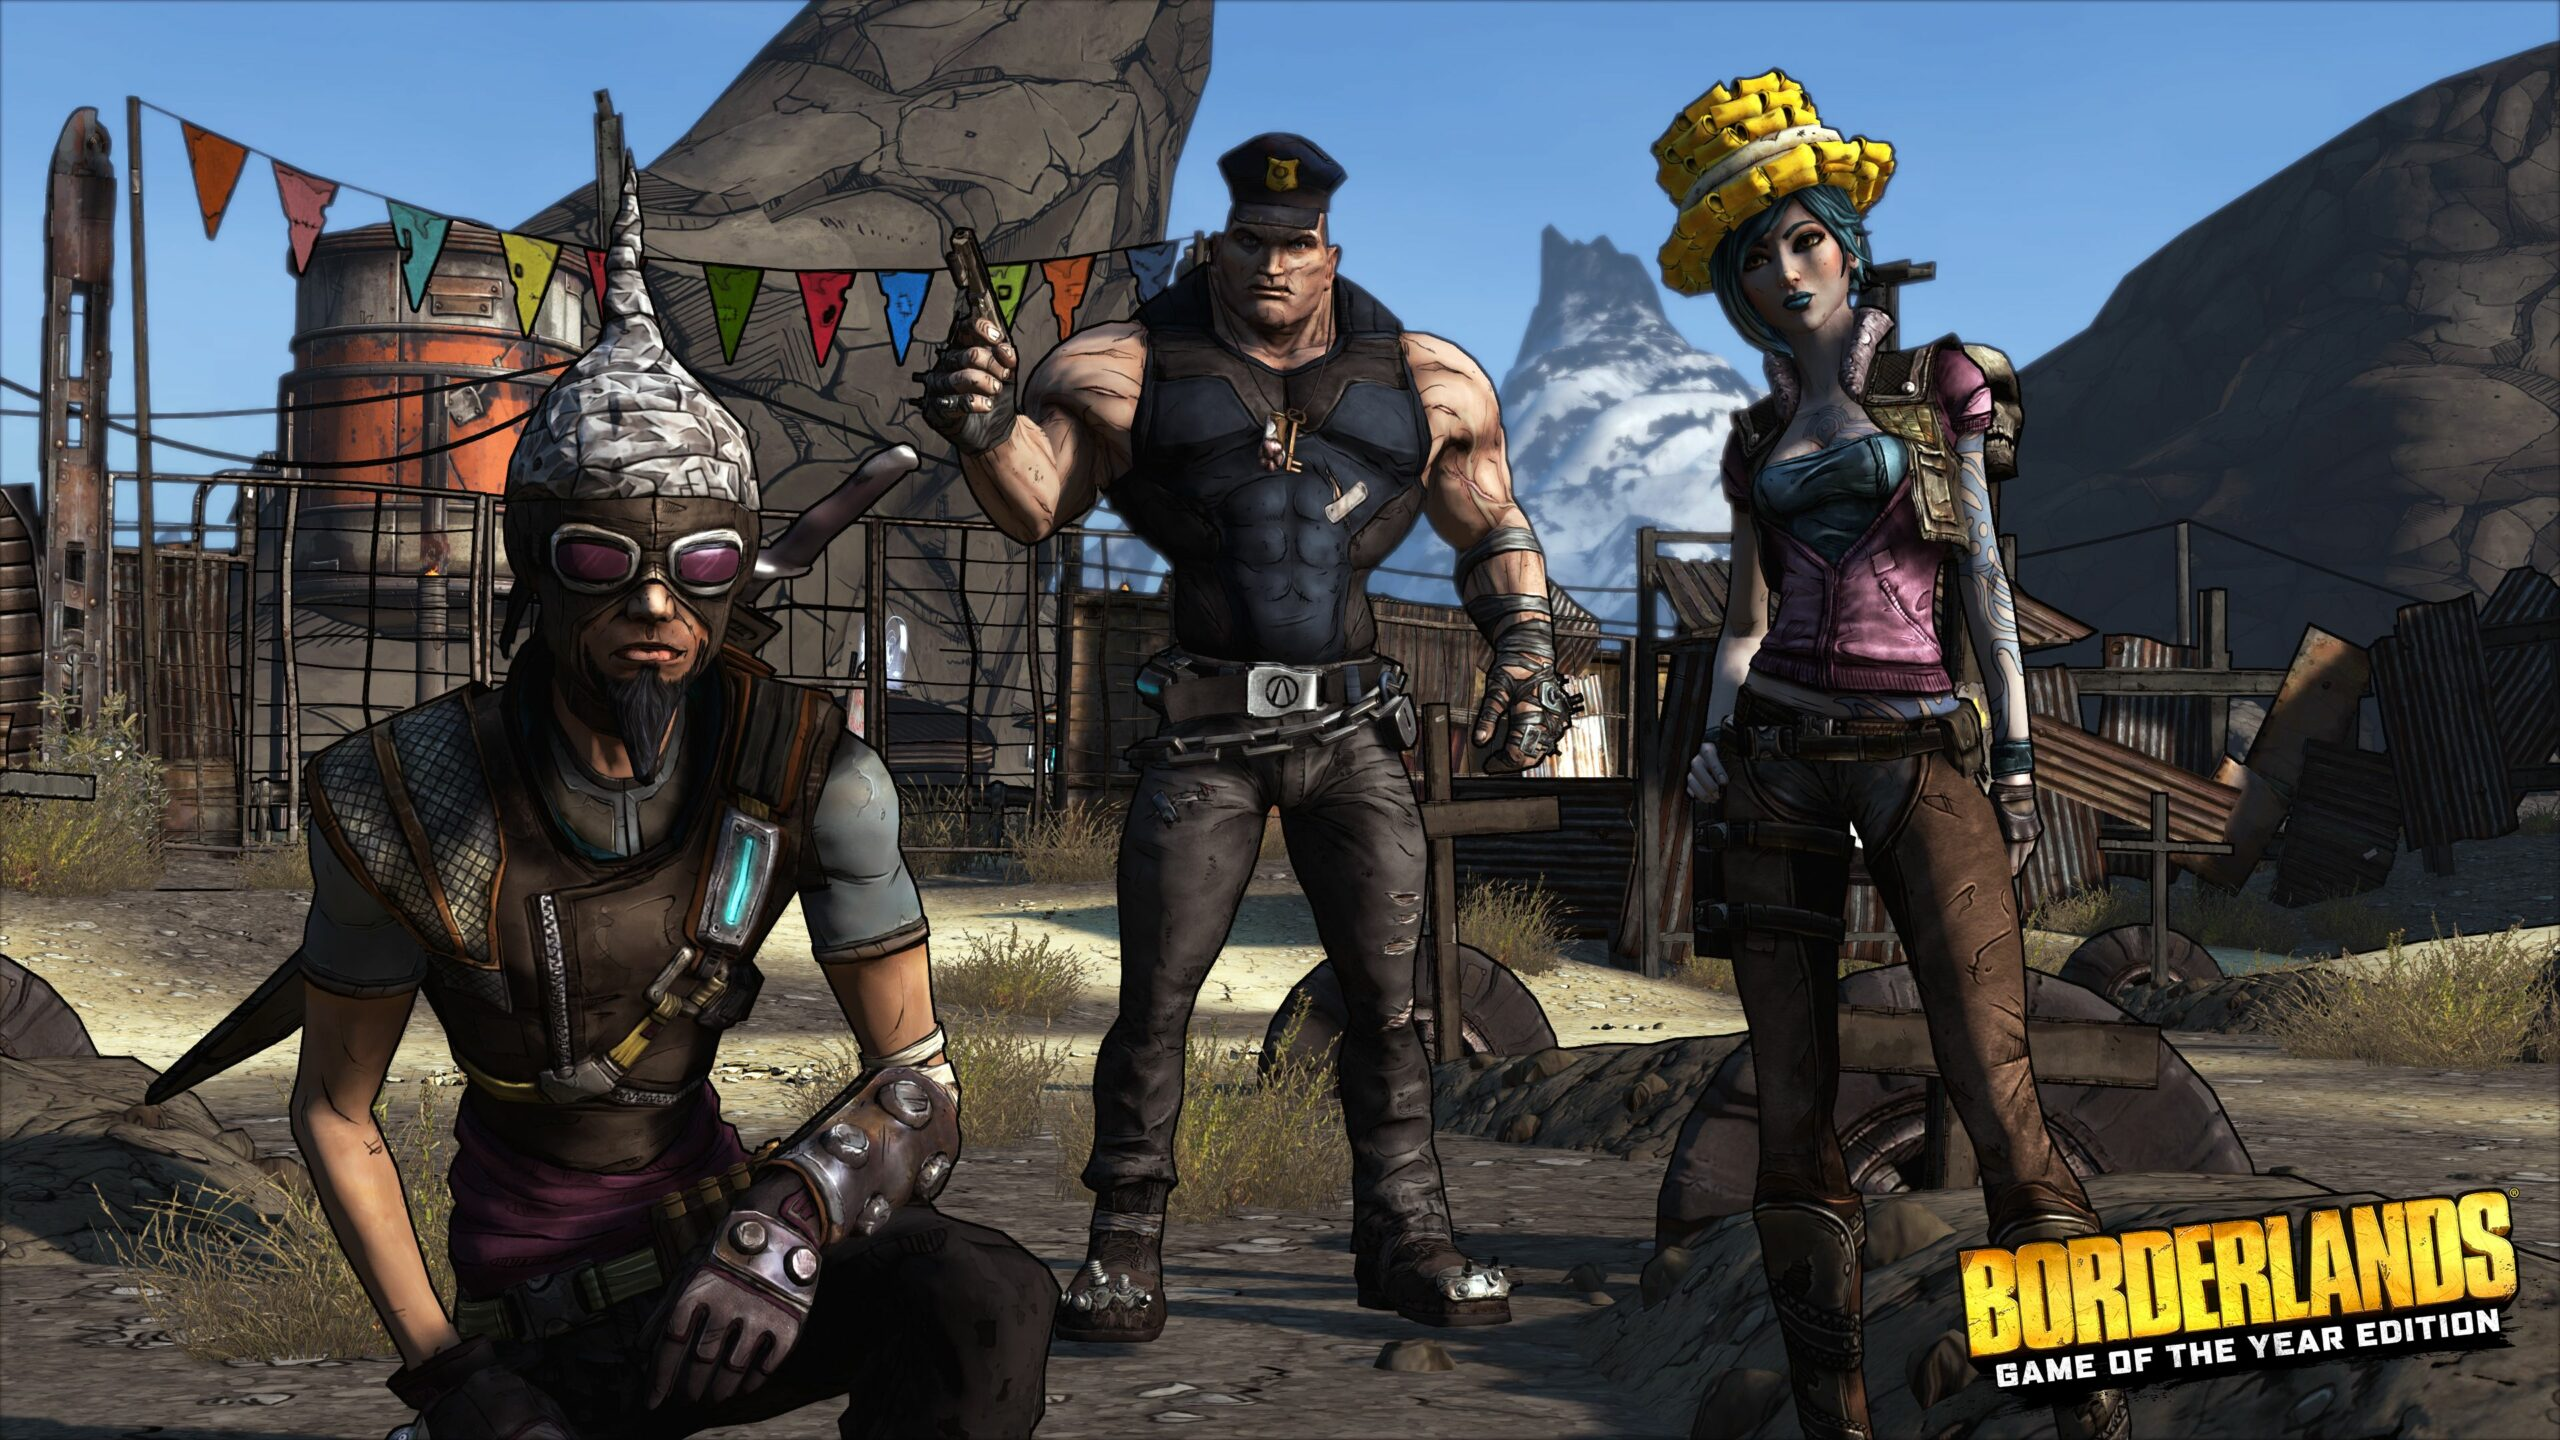 Borderlands-Game-of-the-Year-Edition_2019_03-28-19_003